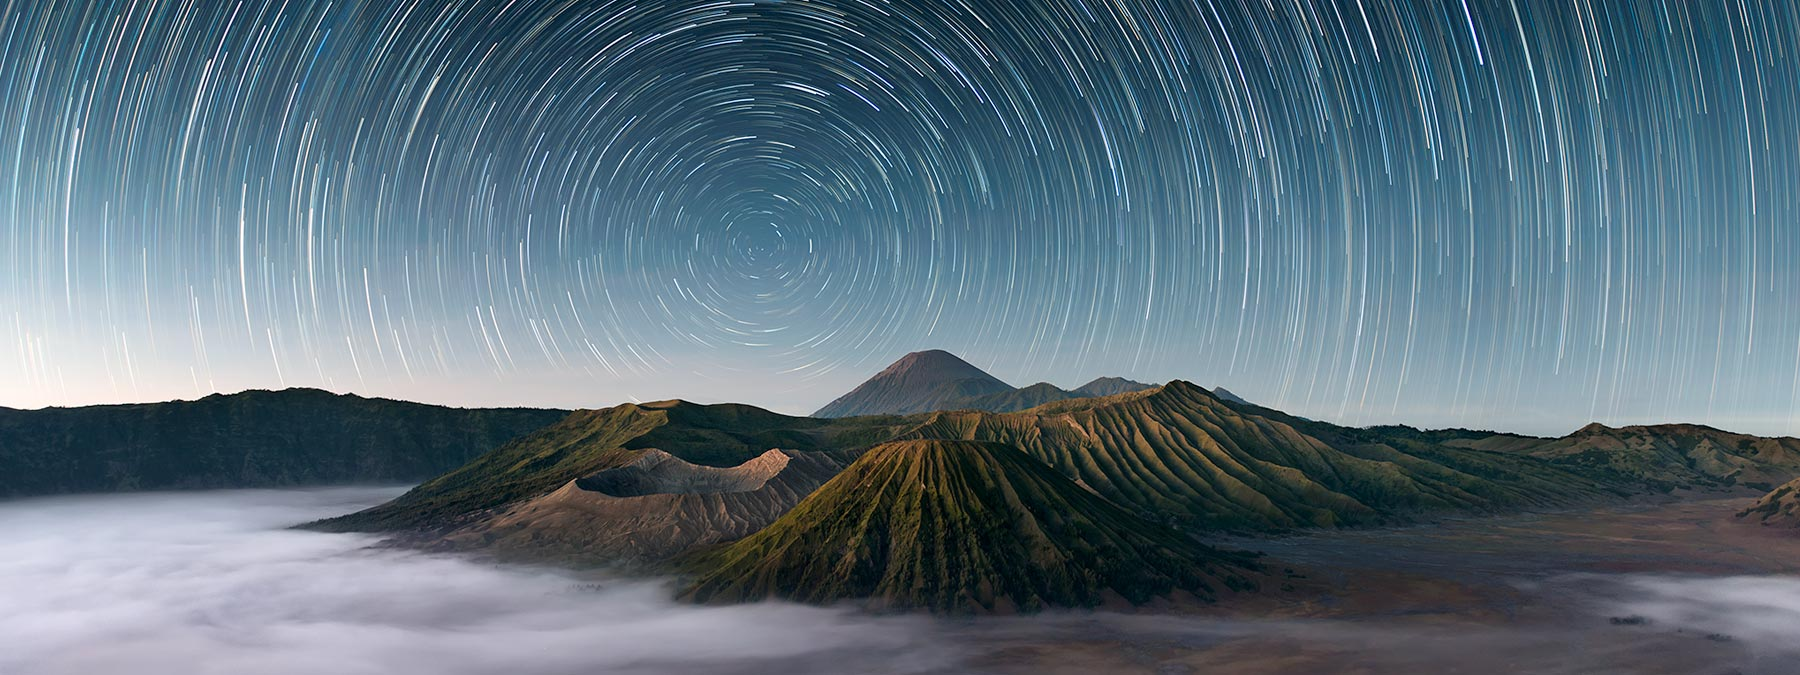 Sleeping Giants | Bromo Indonesia